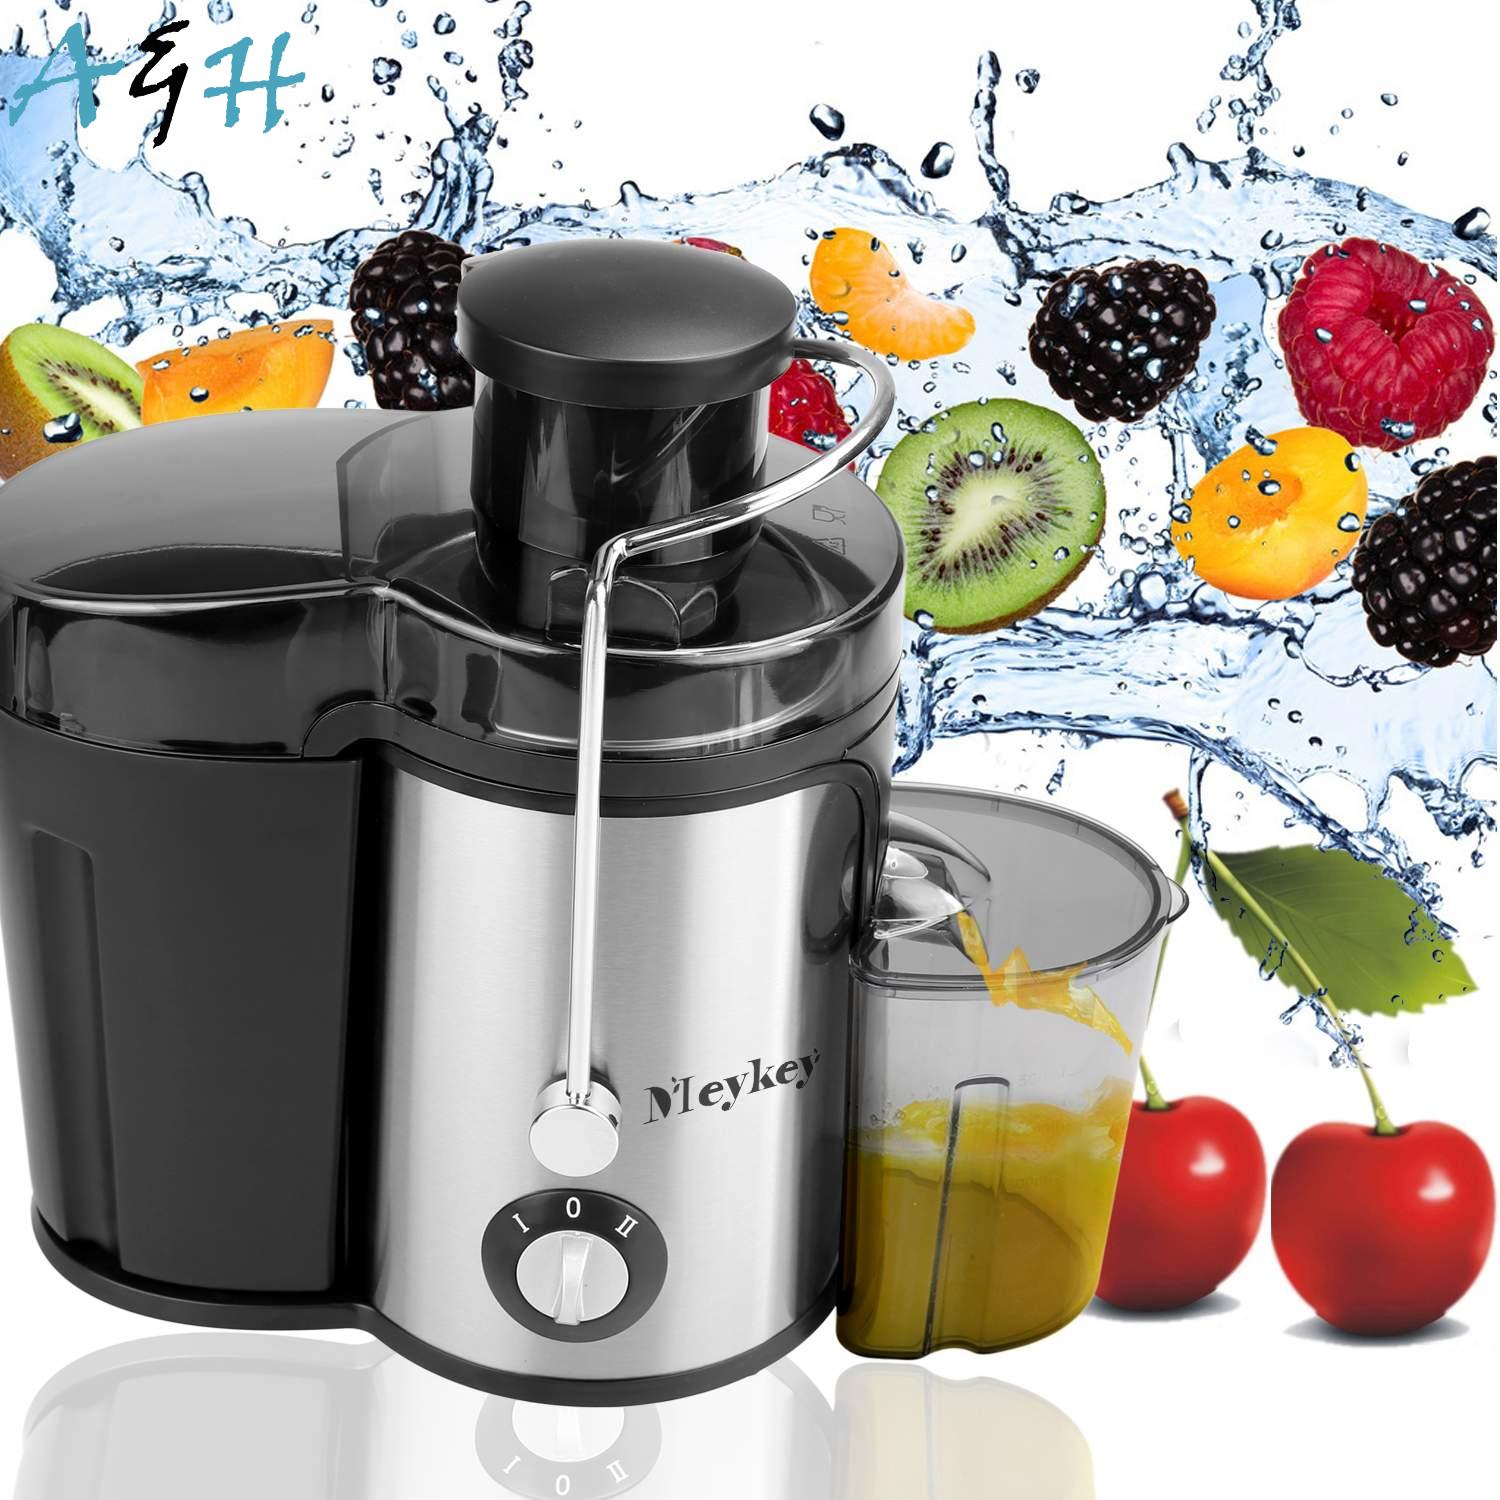 500ml Juicer Automatic Electric Home Fruit Juicer Juice Extractor Two Speed Adjustable Juicer machine 220v 400w juice extractor 508 home juicer electric fruit juicer juice machine baby food maker